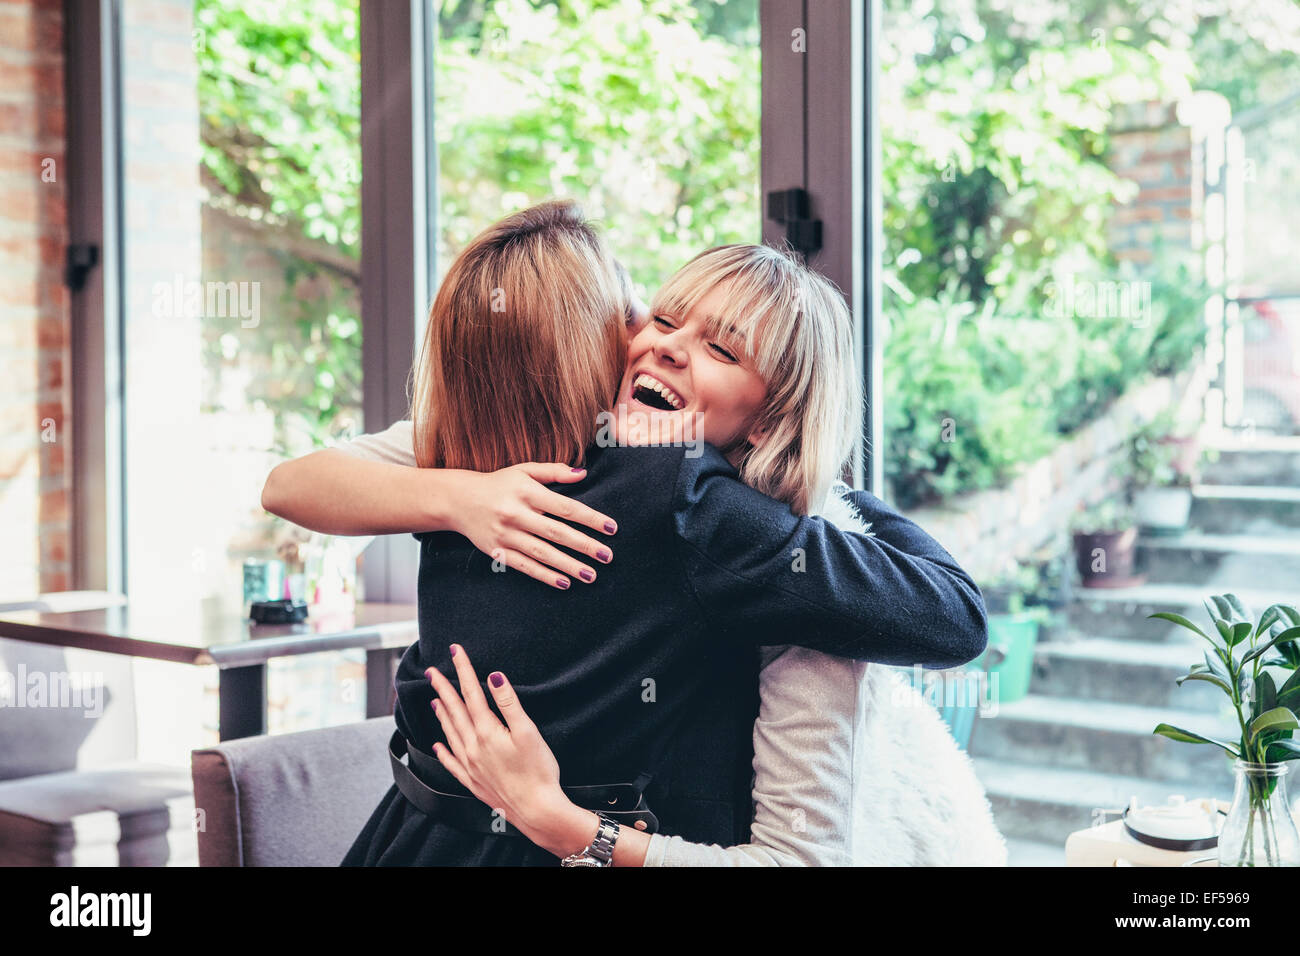 Two young women embracing happily - Stock Image